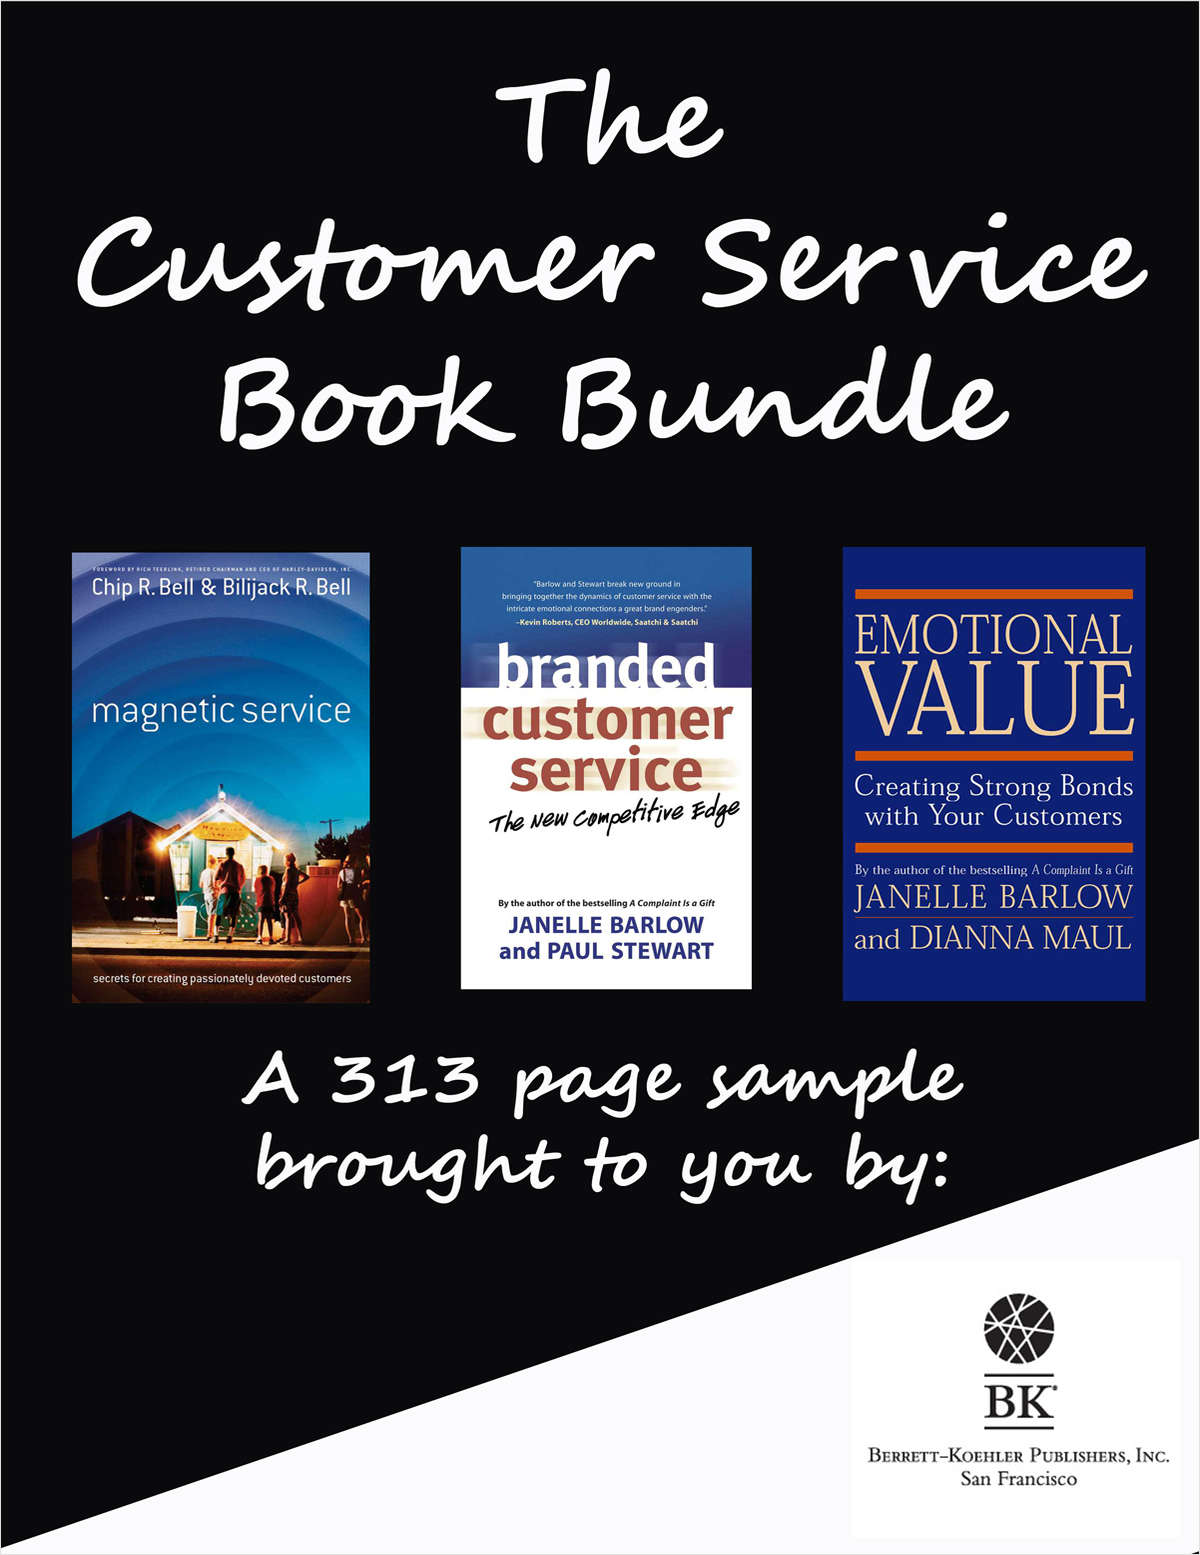 The Customer Service Book Bundle -- A 313 Page Sample from Berrett-Koehler